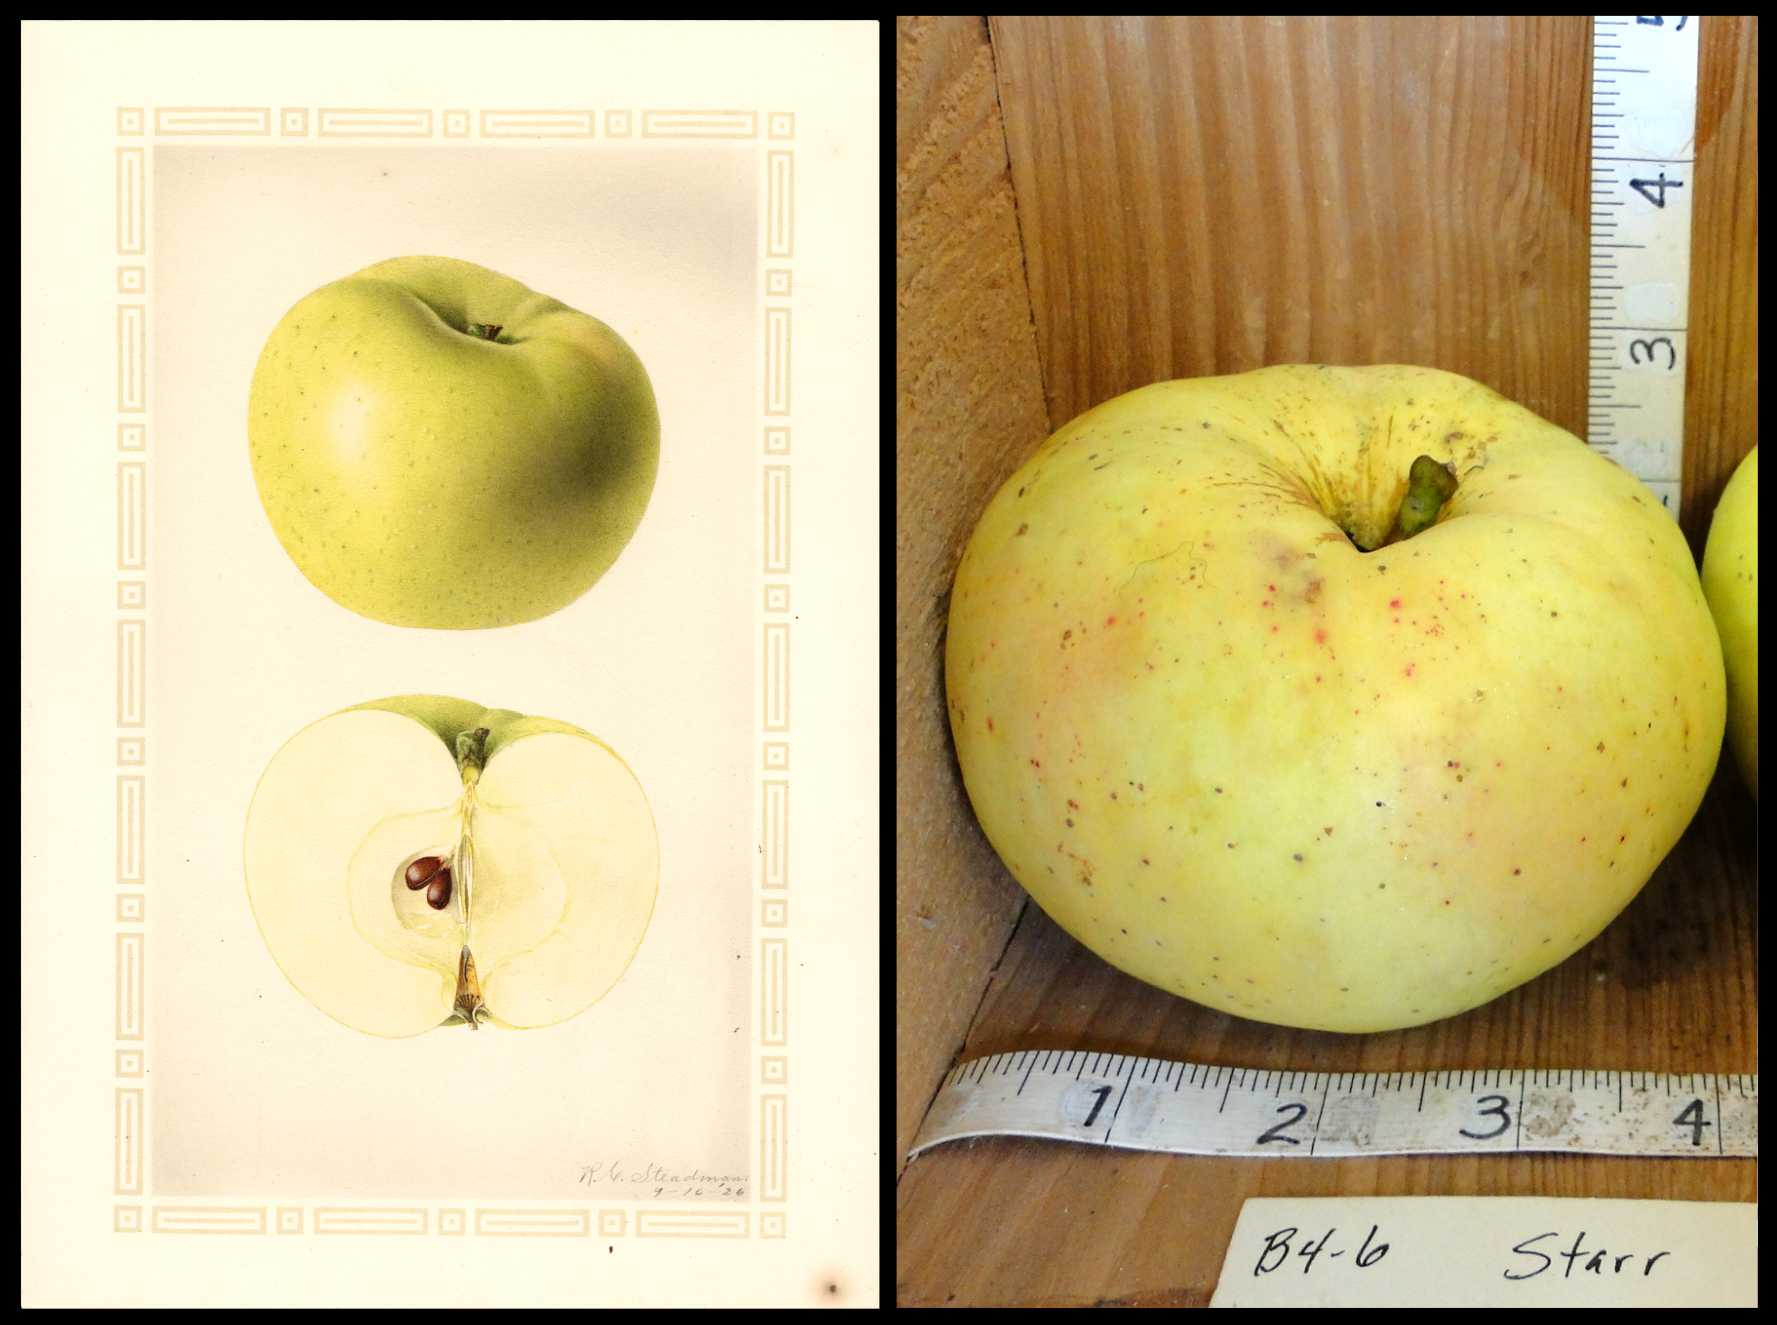 pale yellow apple with small red dots